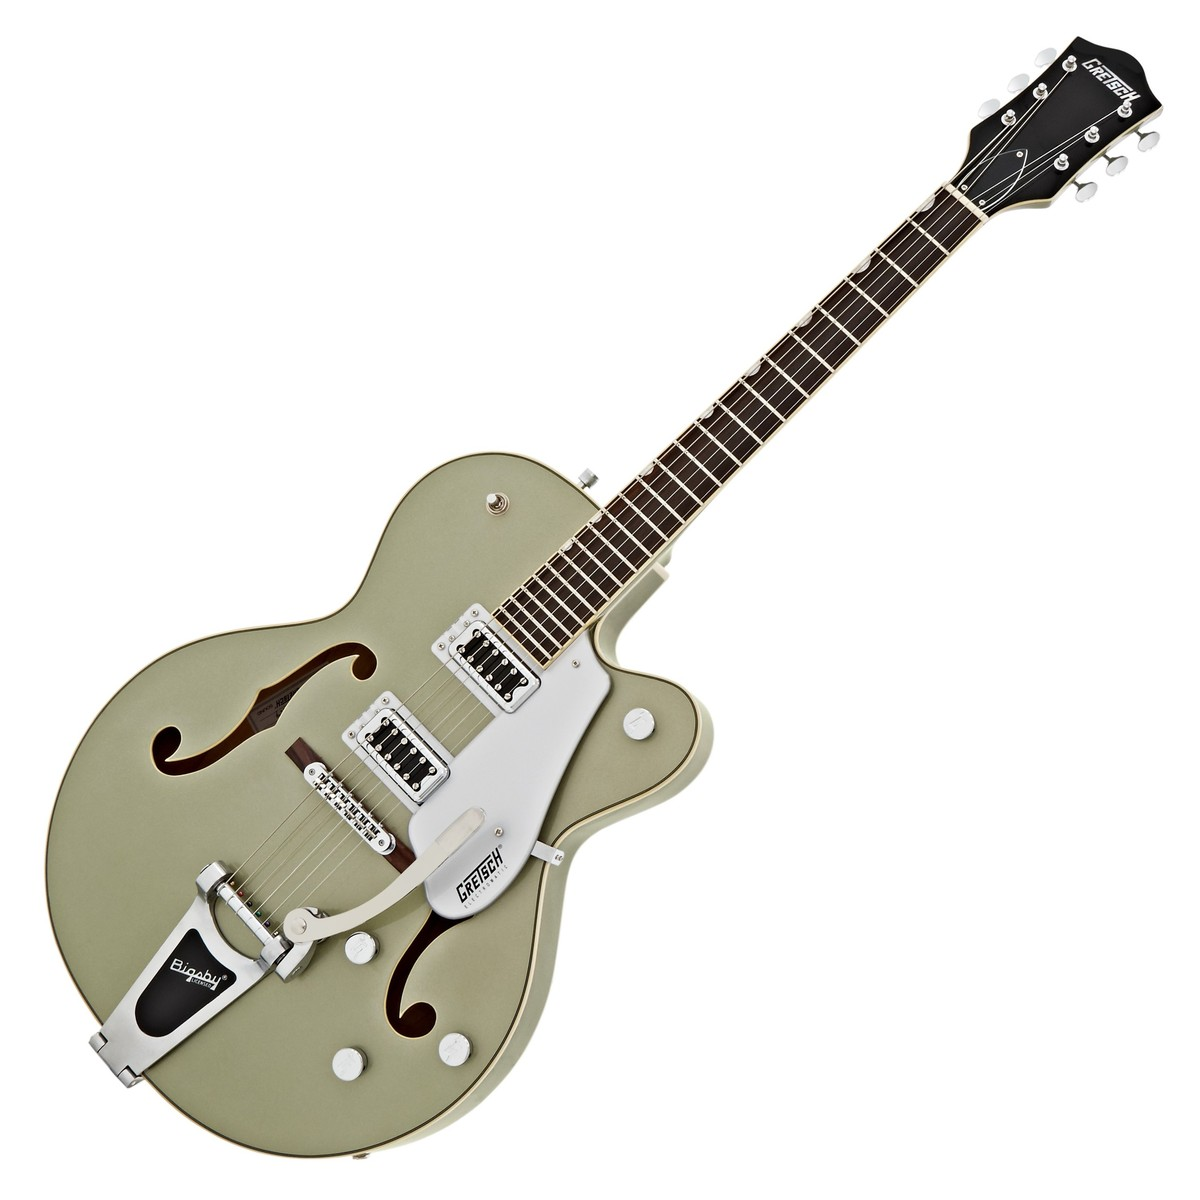 gretsch g5420t 2016 electromatic hollow body guitar aspen green at gear4music. Black Bedroom Furniture Sets. Home Design Ideas